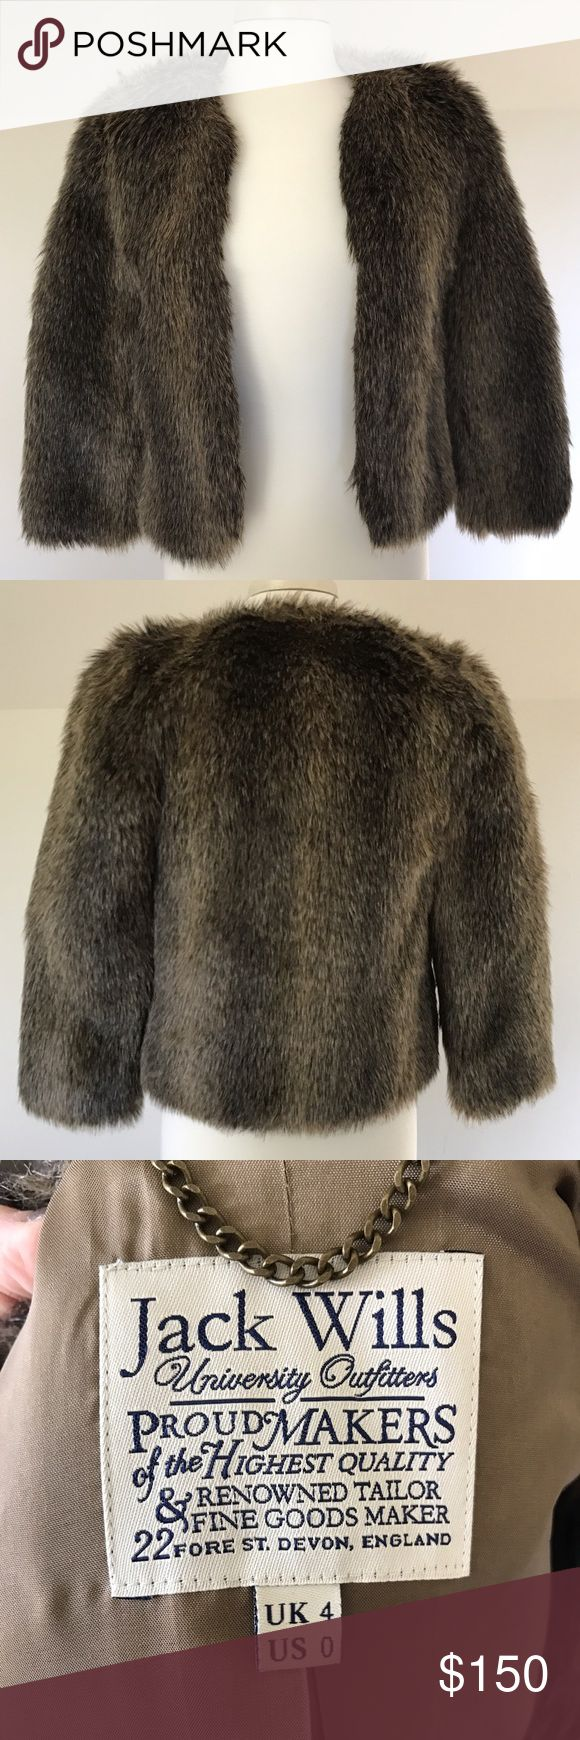 NEW Jack Wills fur coat High quality fur coat never worn. A classic piece that adds the perfect touch to any cold weather outfit. Jack Wills Jackets & Coats